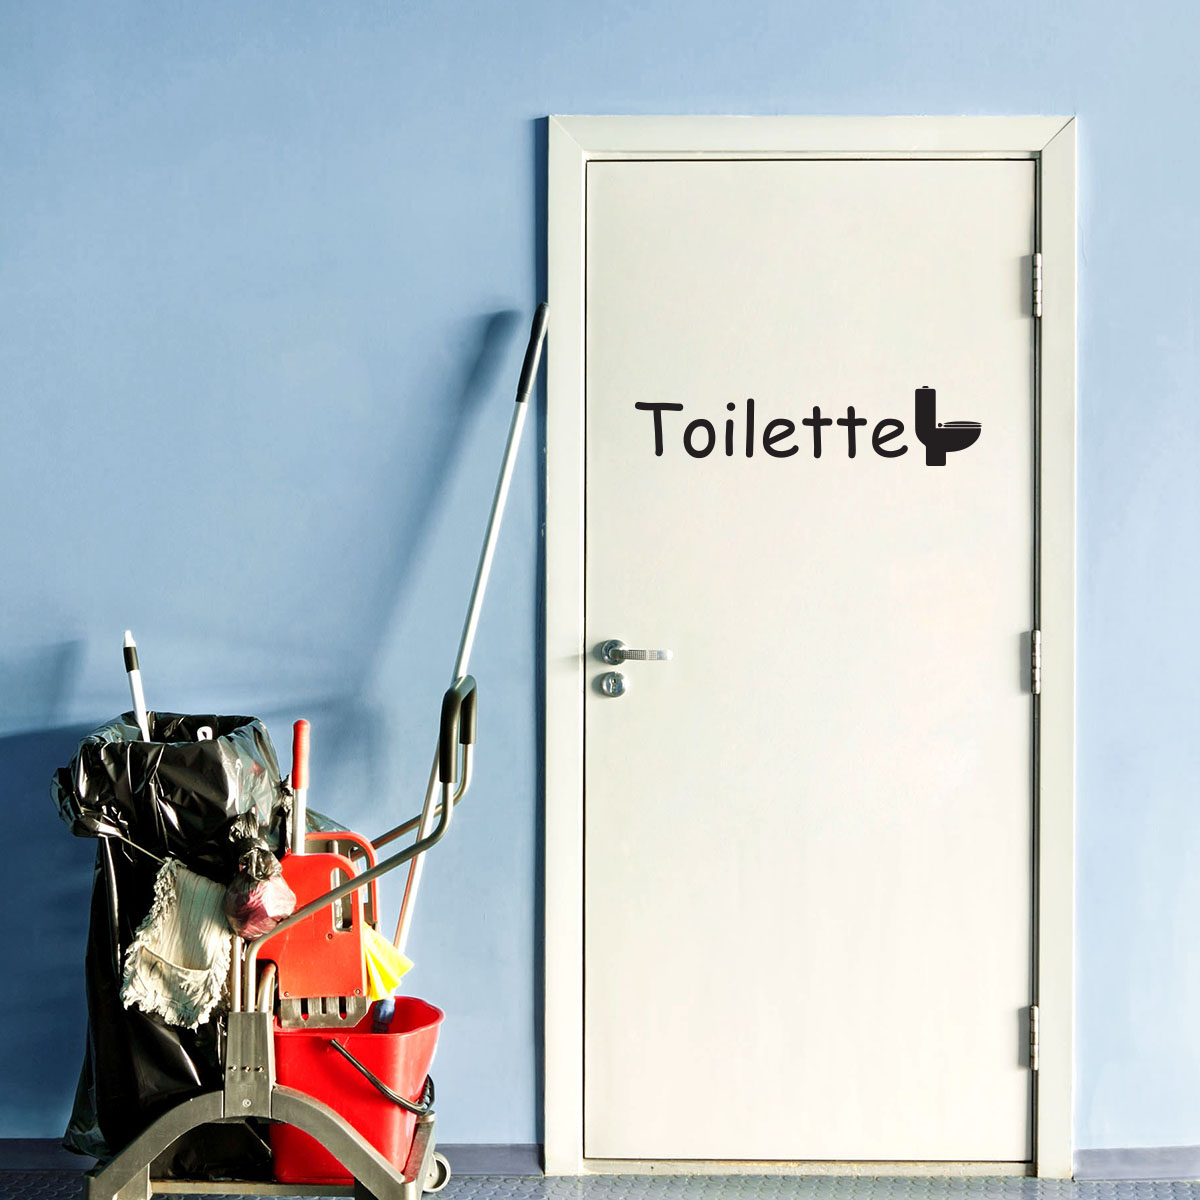 sticker porte toilette stickers salle de bain et wc toilettes ambiance sticker. Black Bedroom Furniture Sets. Home Design Ideas